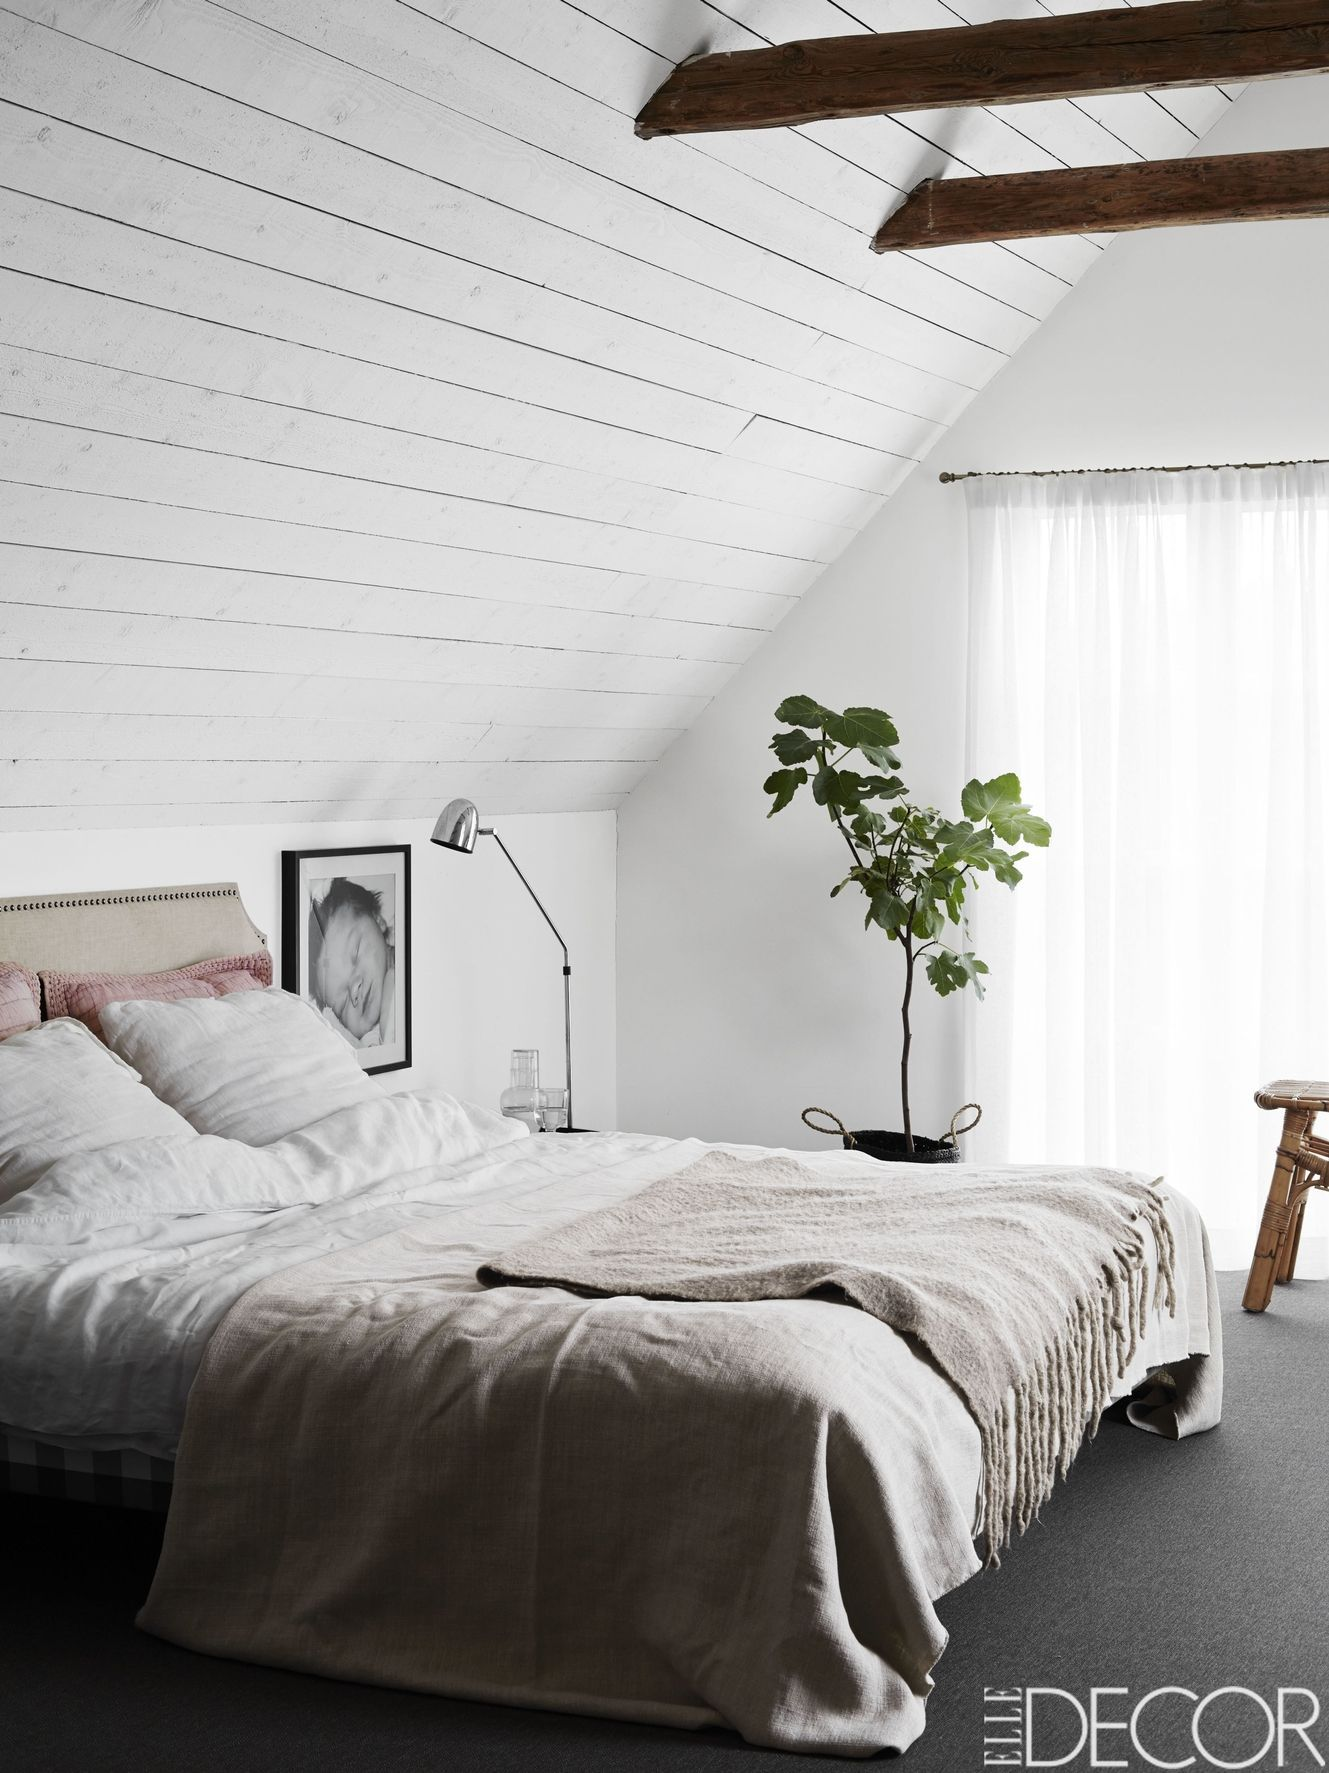 43 Small Bedroom Design Ideas - Decorating Tips for Small ... on Bedroom Ideas Small Room  id=18160